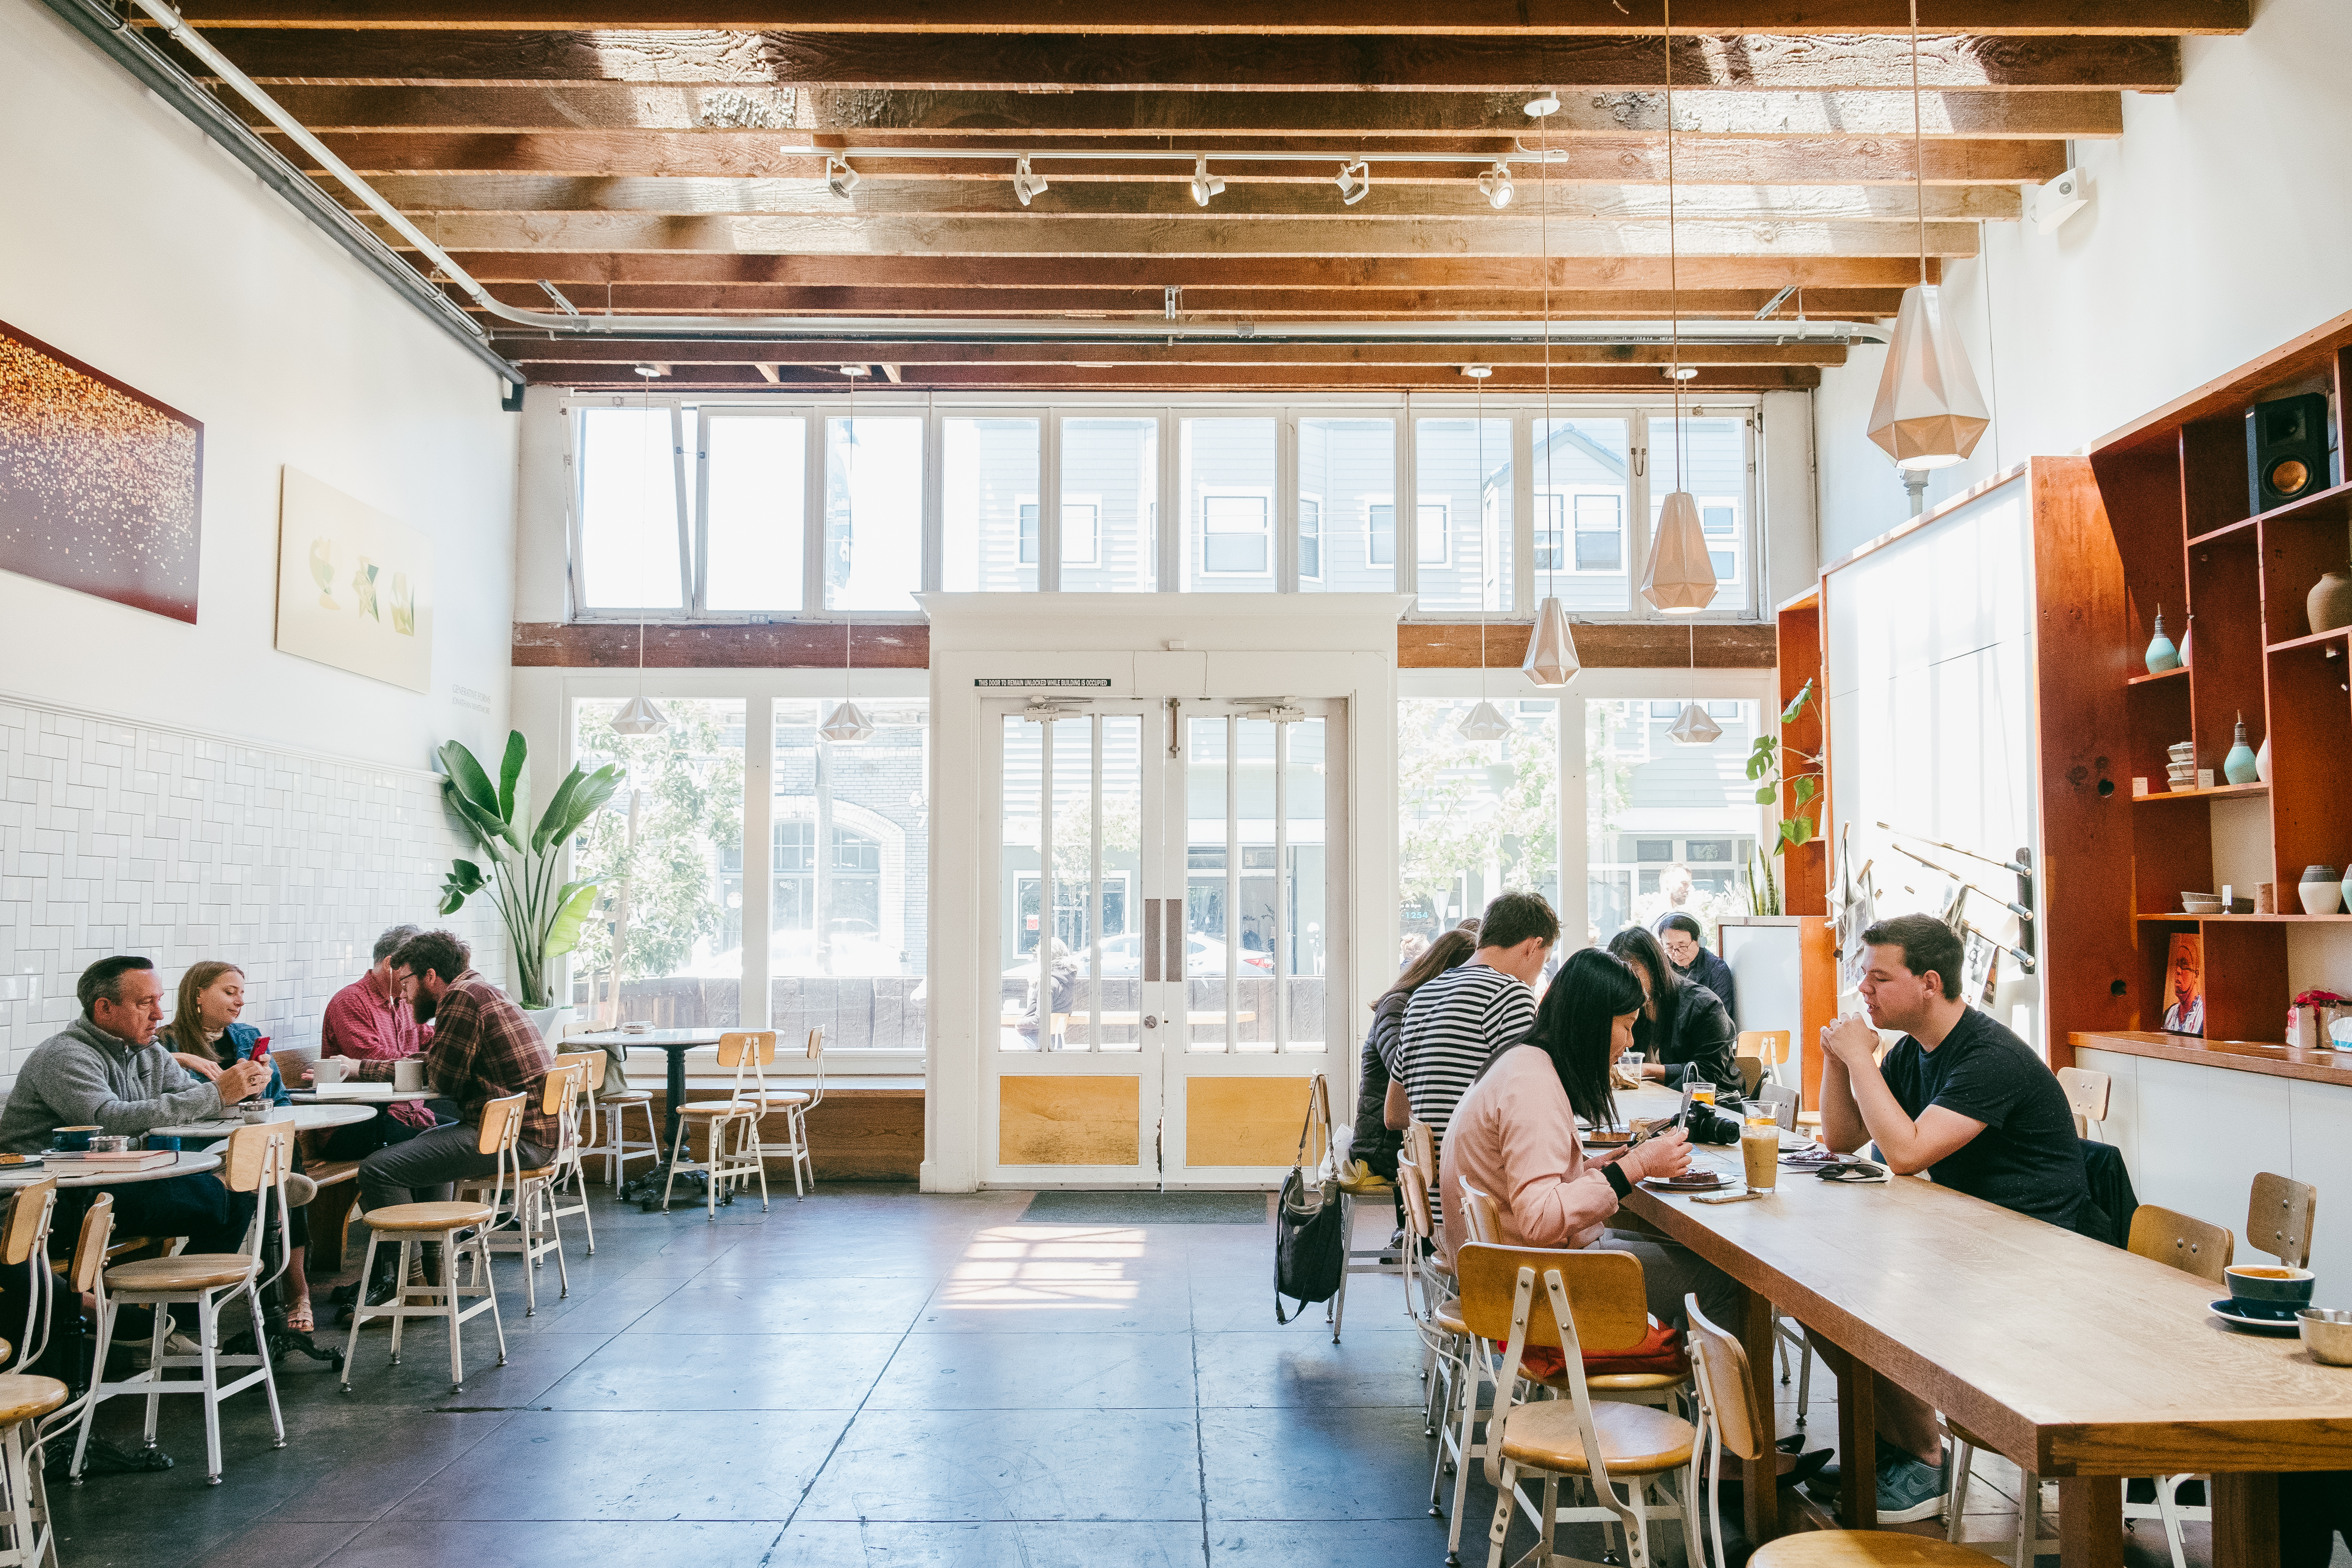 The First Timer's Guide To Eating And Drinking In SF - San ... on san francisco trolley tours, san francisco city map print, san francisco tourist street map,